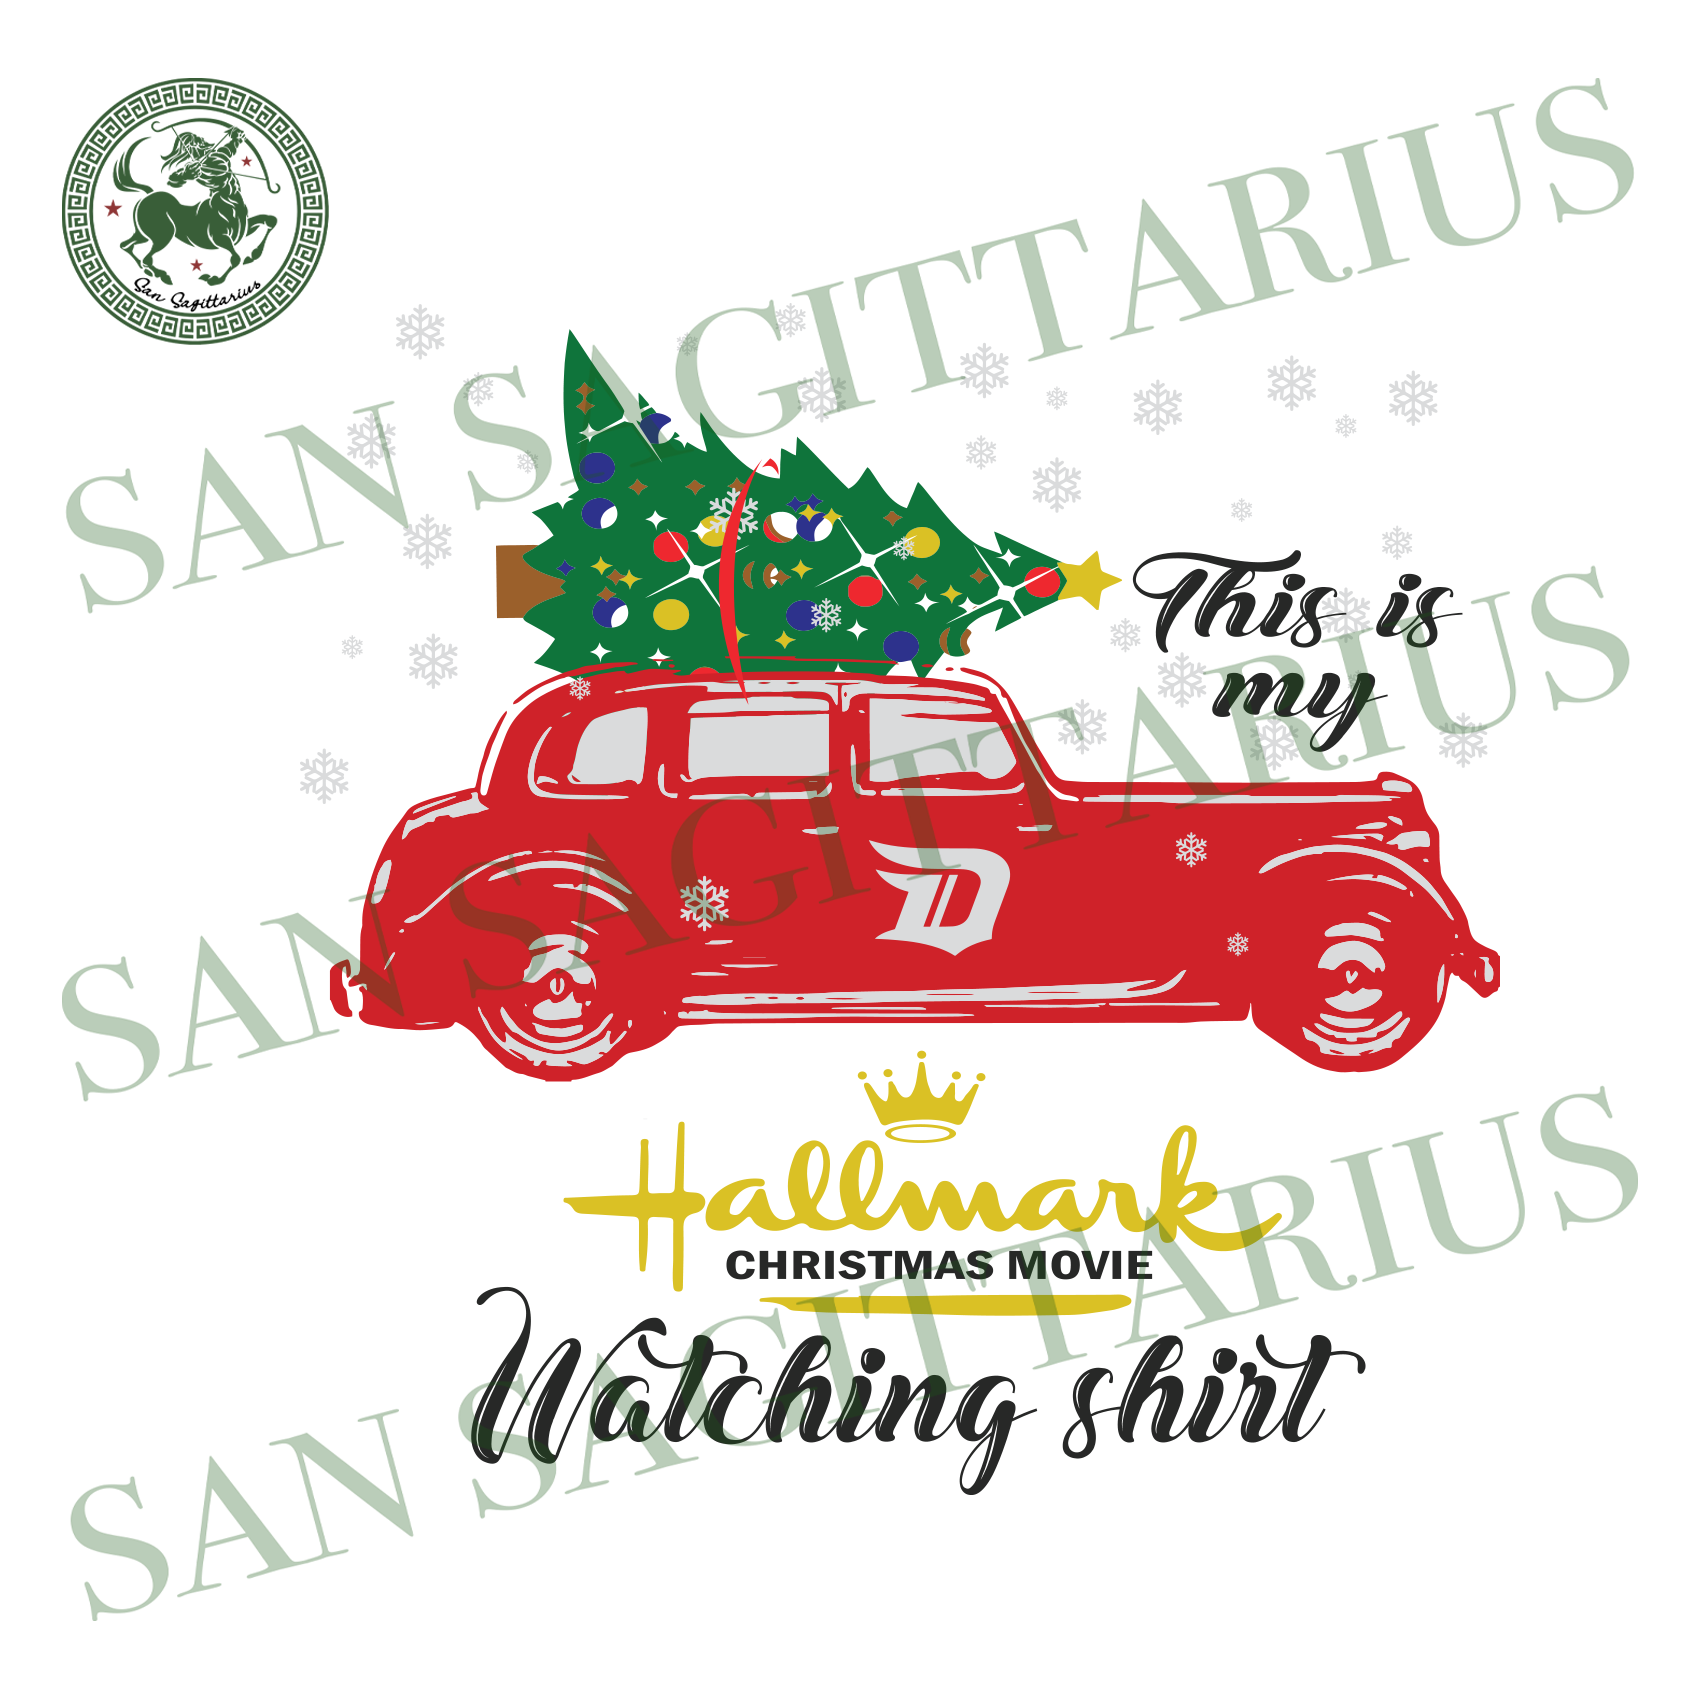 Detroit Red Wings This Is My Hallmark Christmas Movie Watching Shirt, Sport Svg, Christmas Svg, Detroit Red Wings Svg, NHL Sport Svg, Detroit Red Wings NHL Svg, Detroit Red Wings NHL Gift, Ho